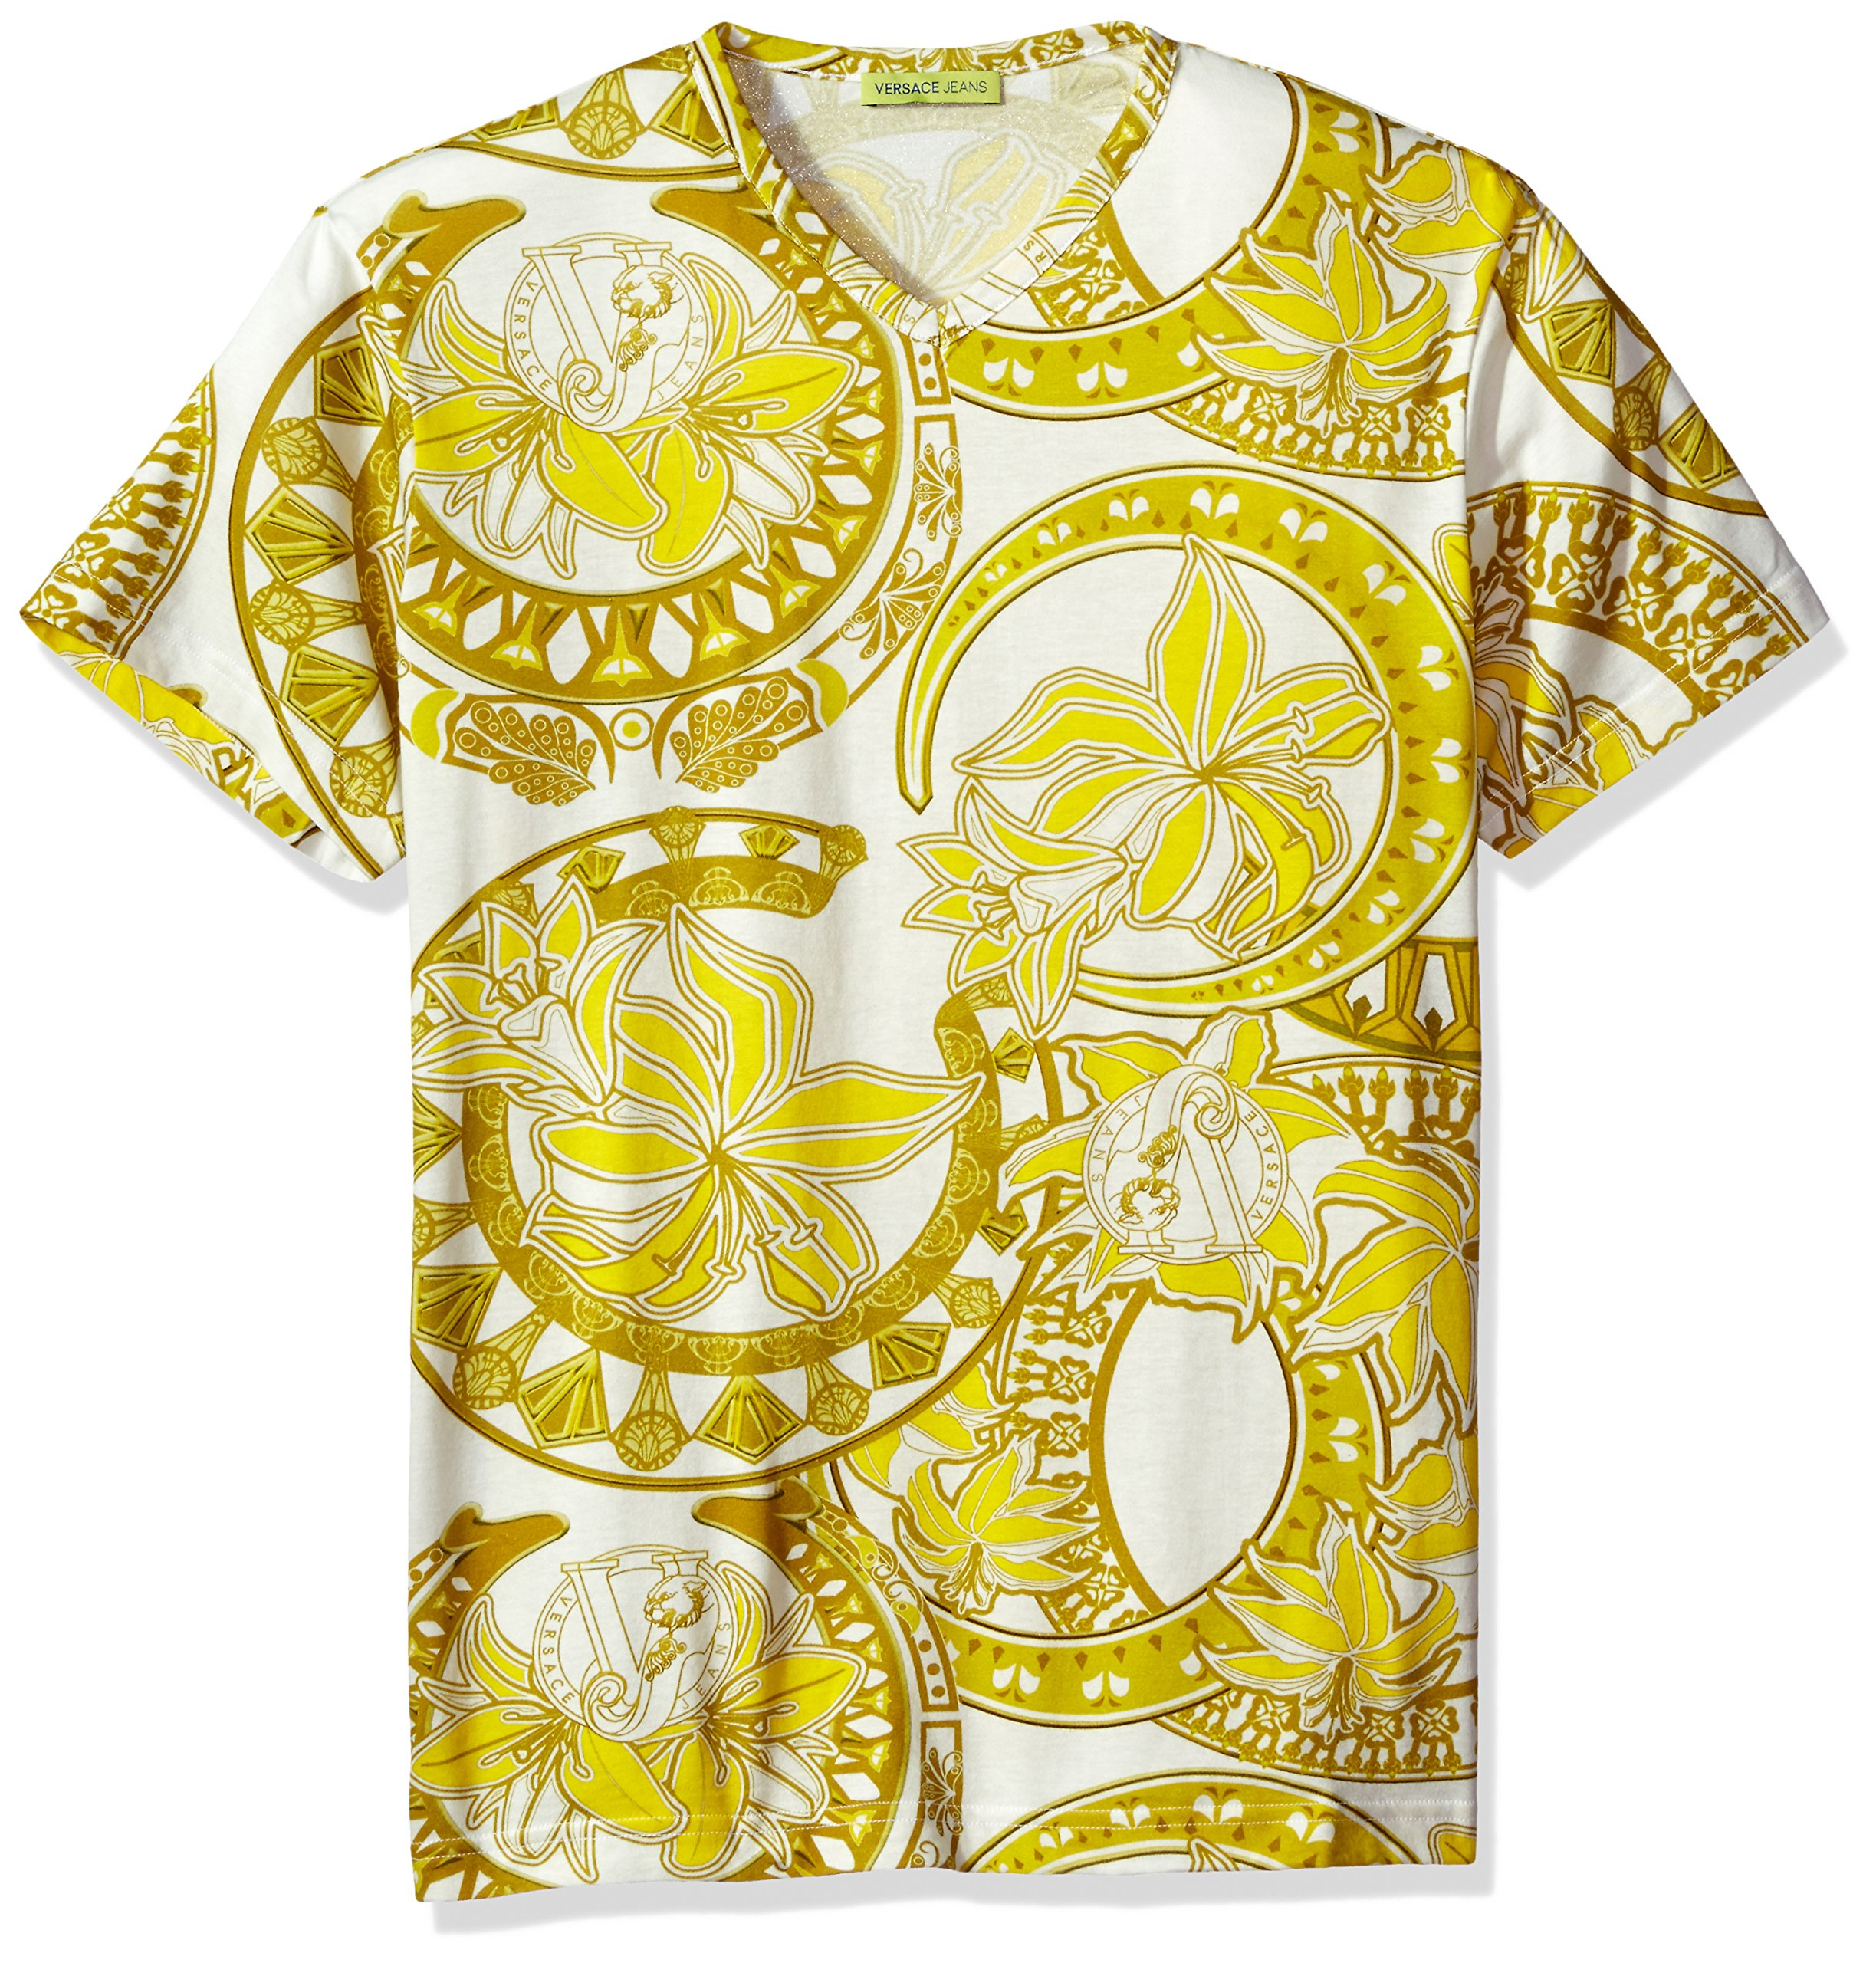 Versace Jeans Men's Gold Printed T-Shirt, Bianco, Medium